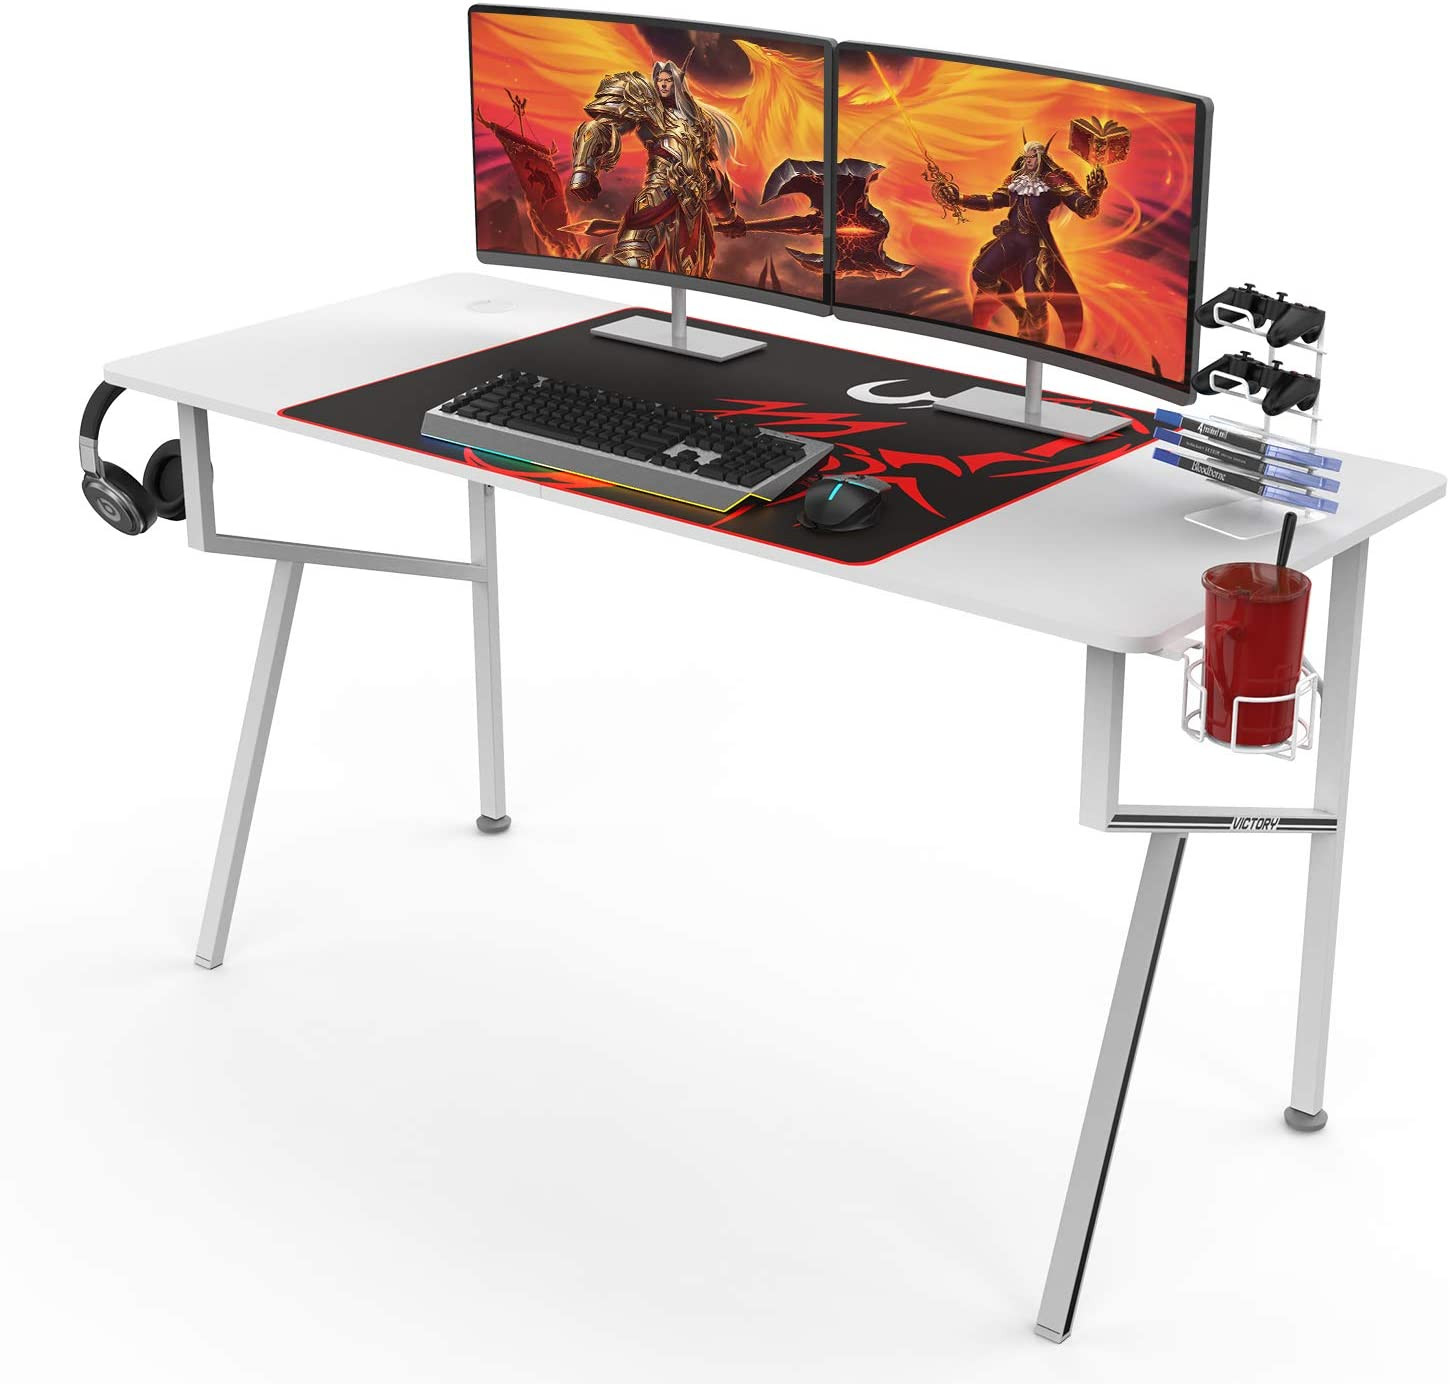 DESIGNA 55'' Gaming Desk, K-Shape Computer Desk with Free Mouse pad, Cup Holder& Headphone Hook & Controller Stand, Gamer Workstation for Home Office, White